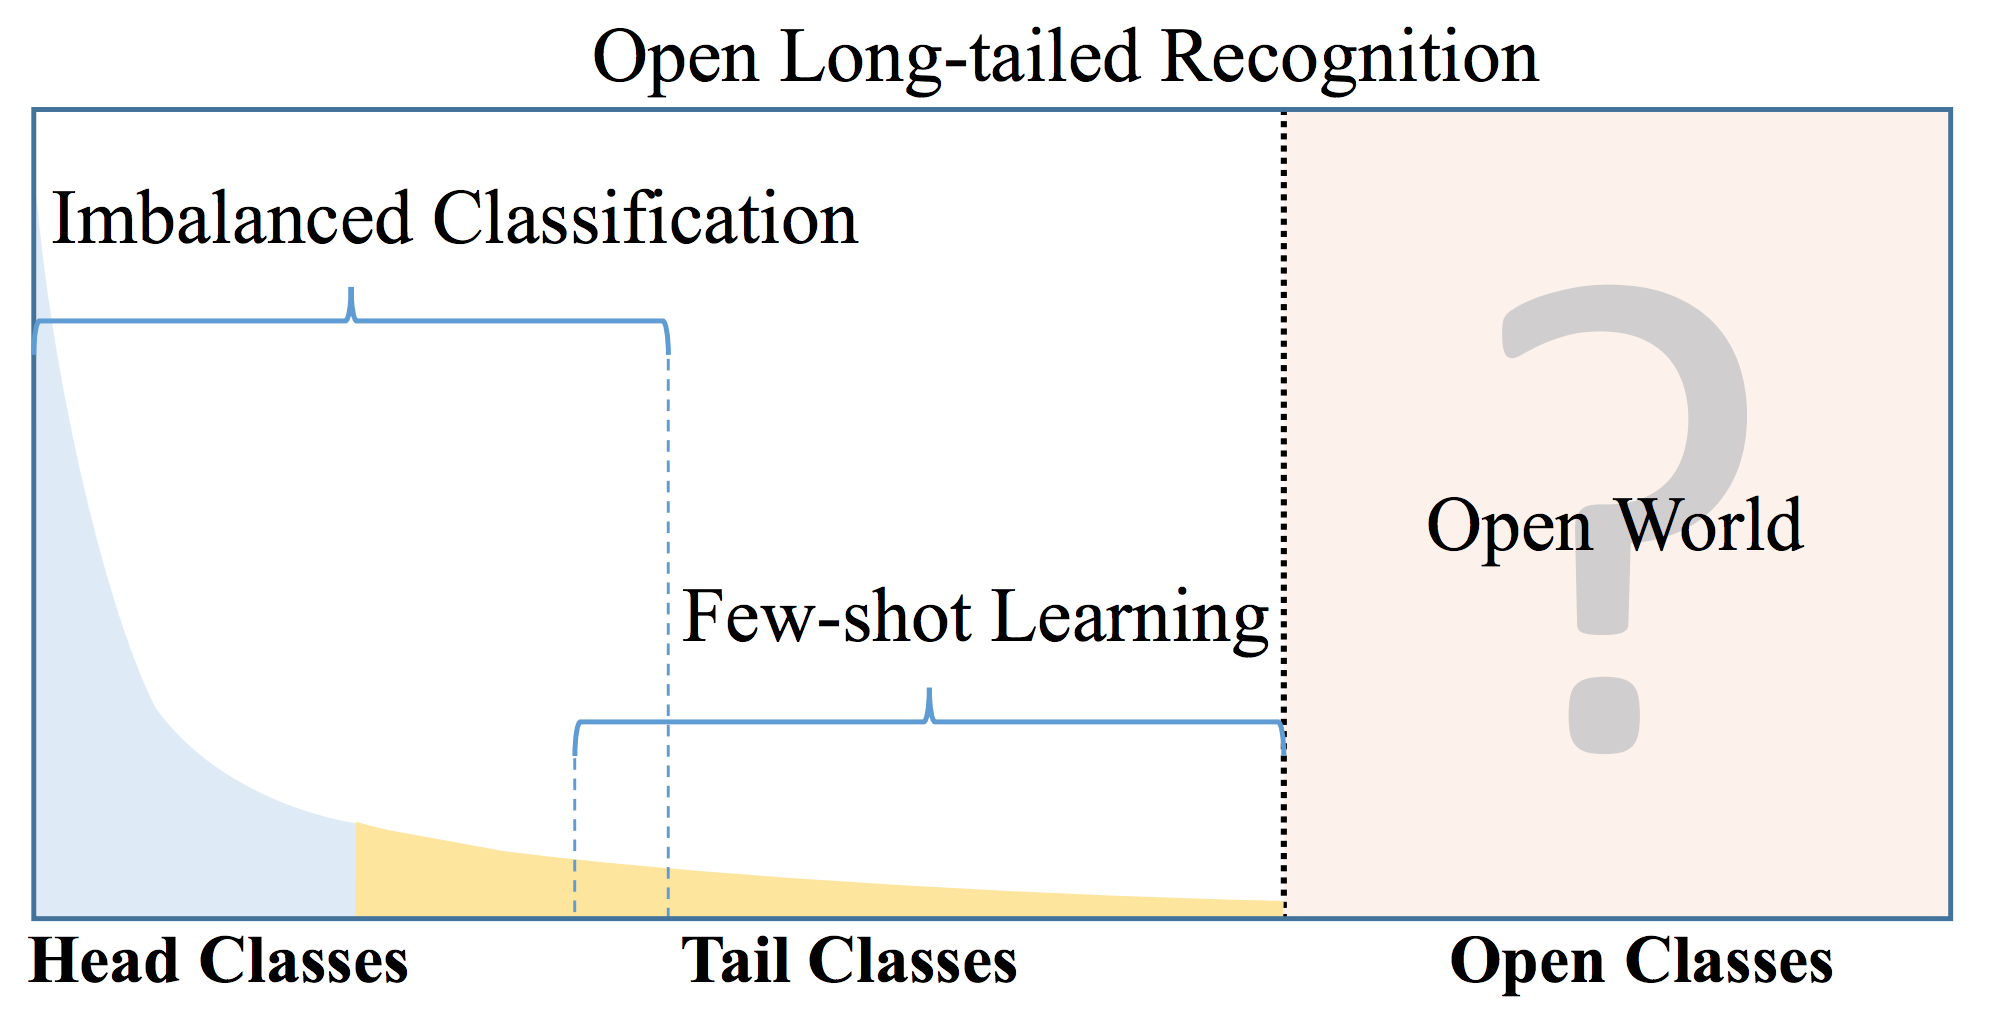 53b598ff048fdd13305666134be3d2b0 - Imbalanced Learning Foundations Algorithms And Applications